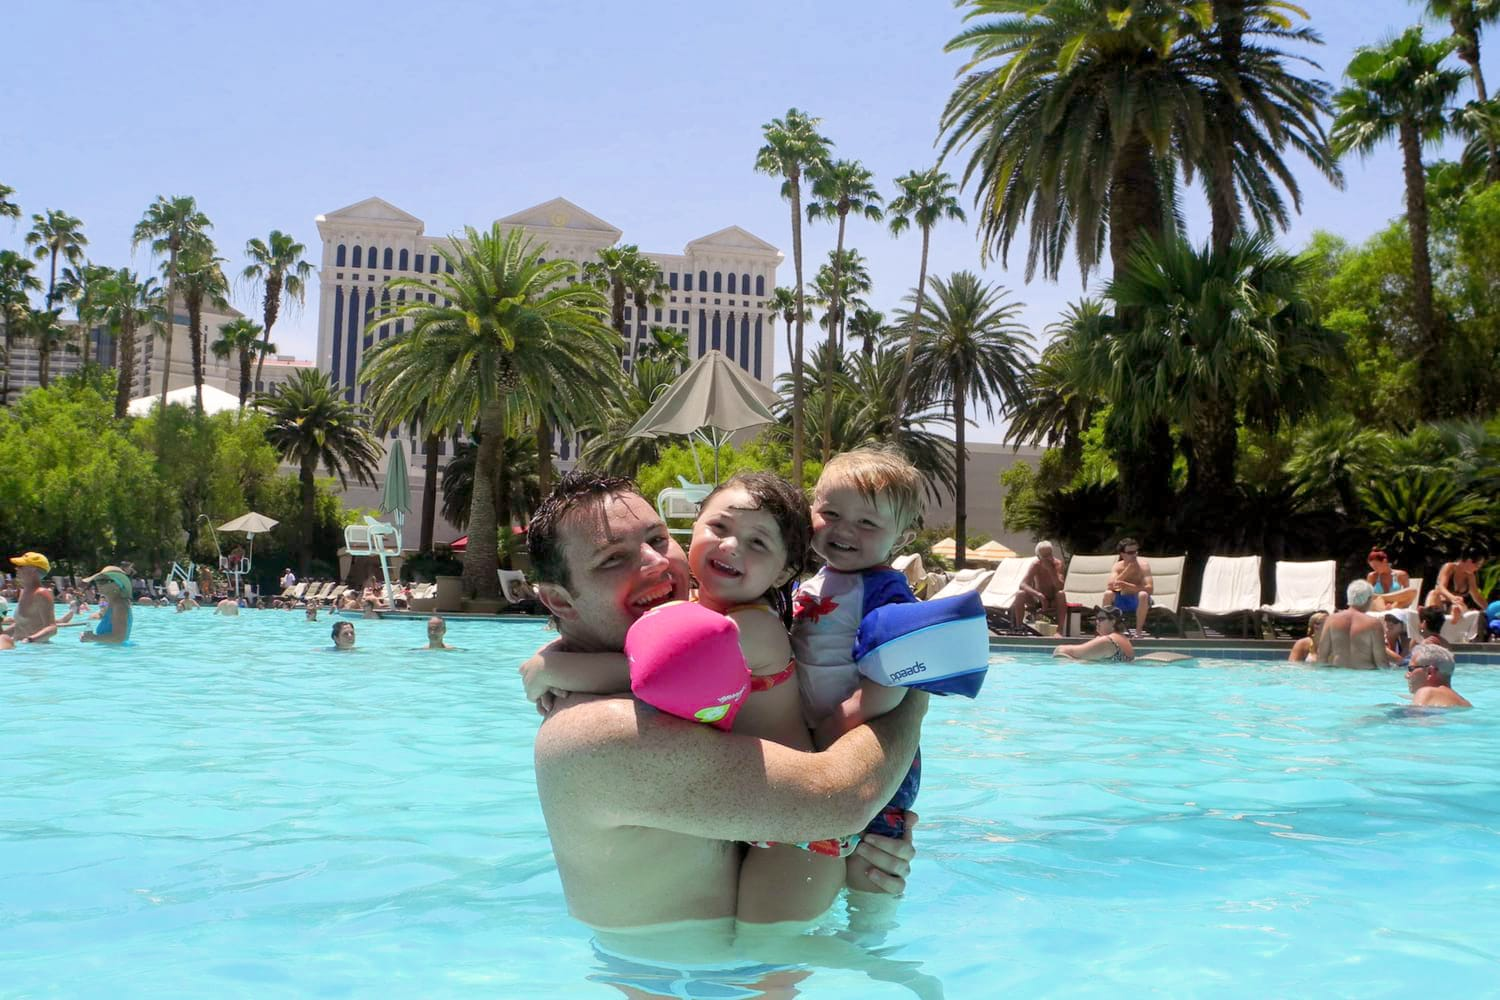 Family at the Mirage Pool in Las Vegas